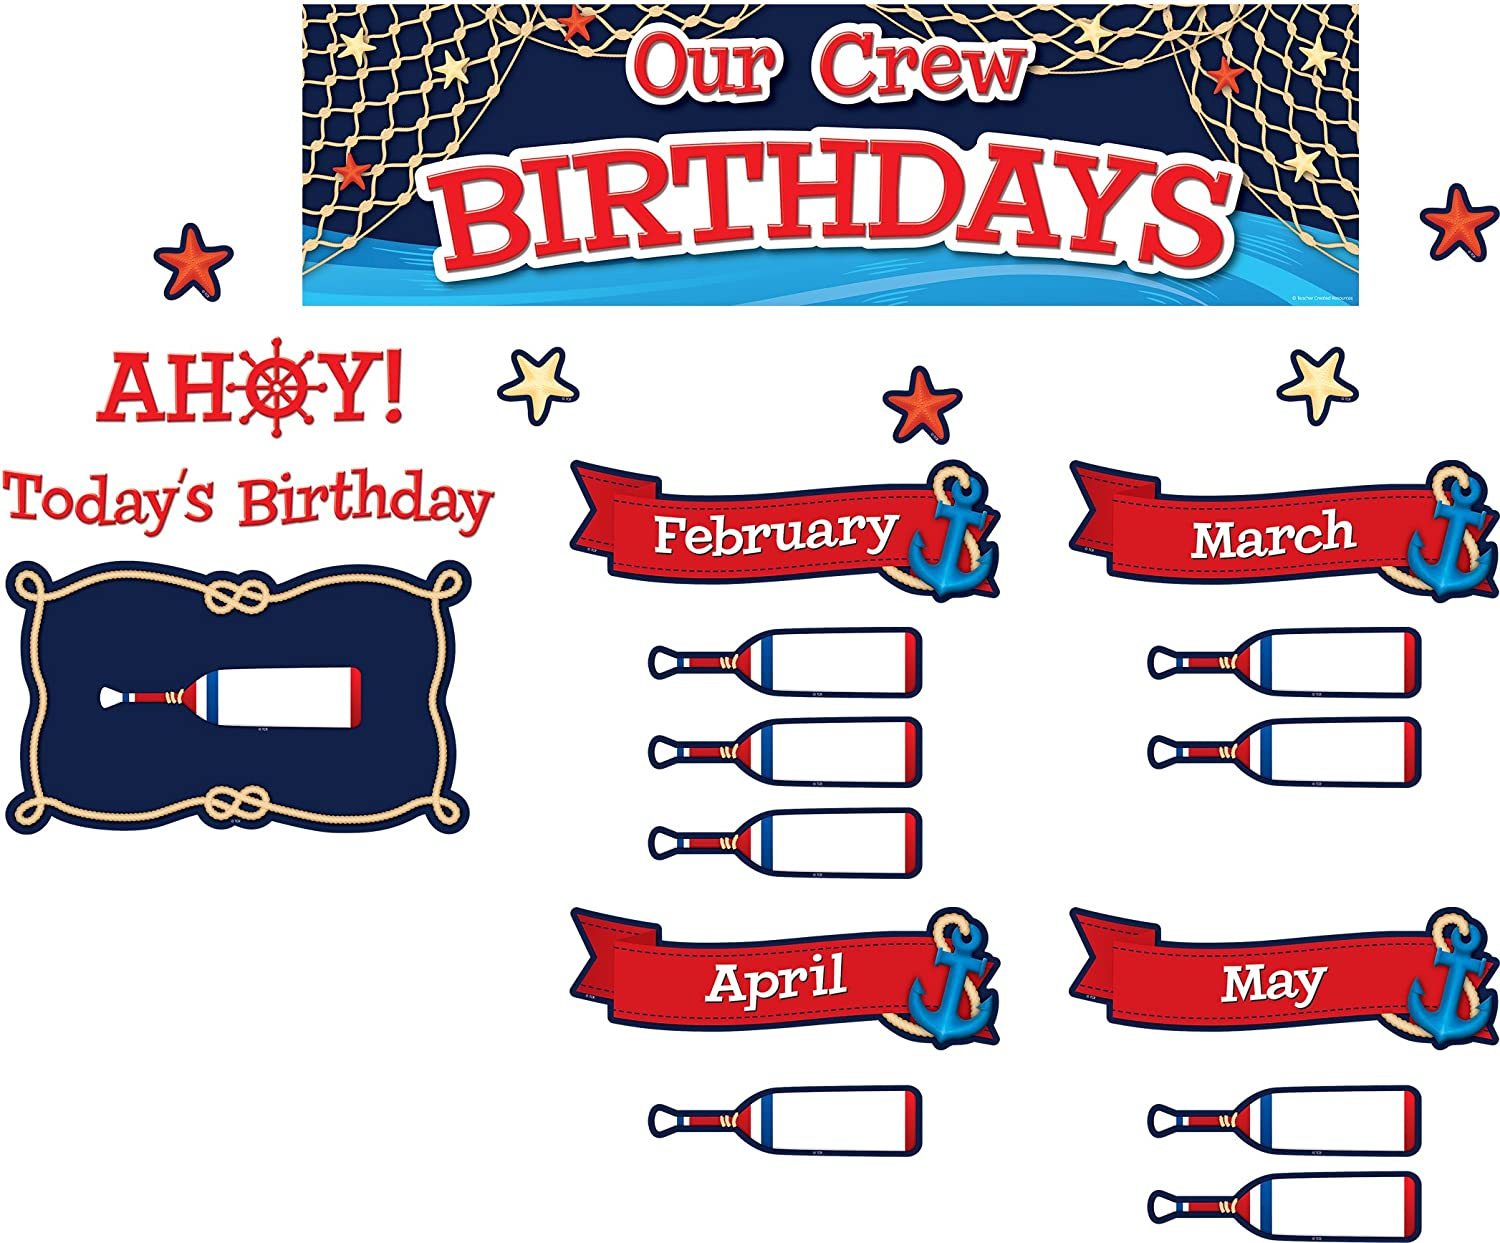 Nautical Our Crew Birthdays Mini Bulletin Board